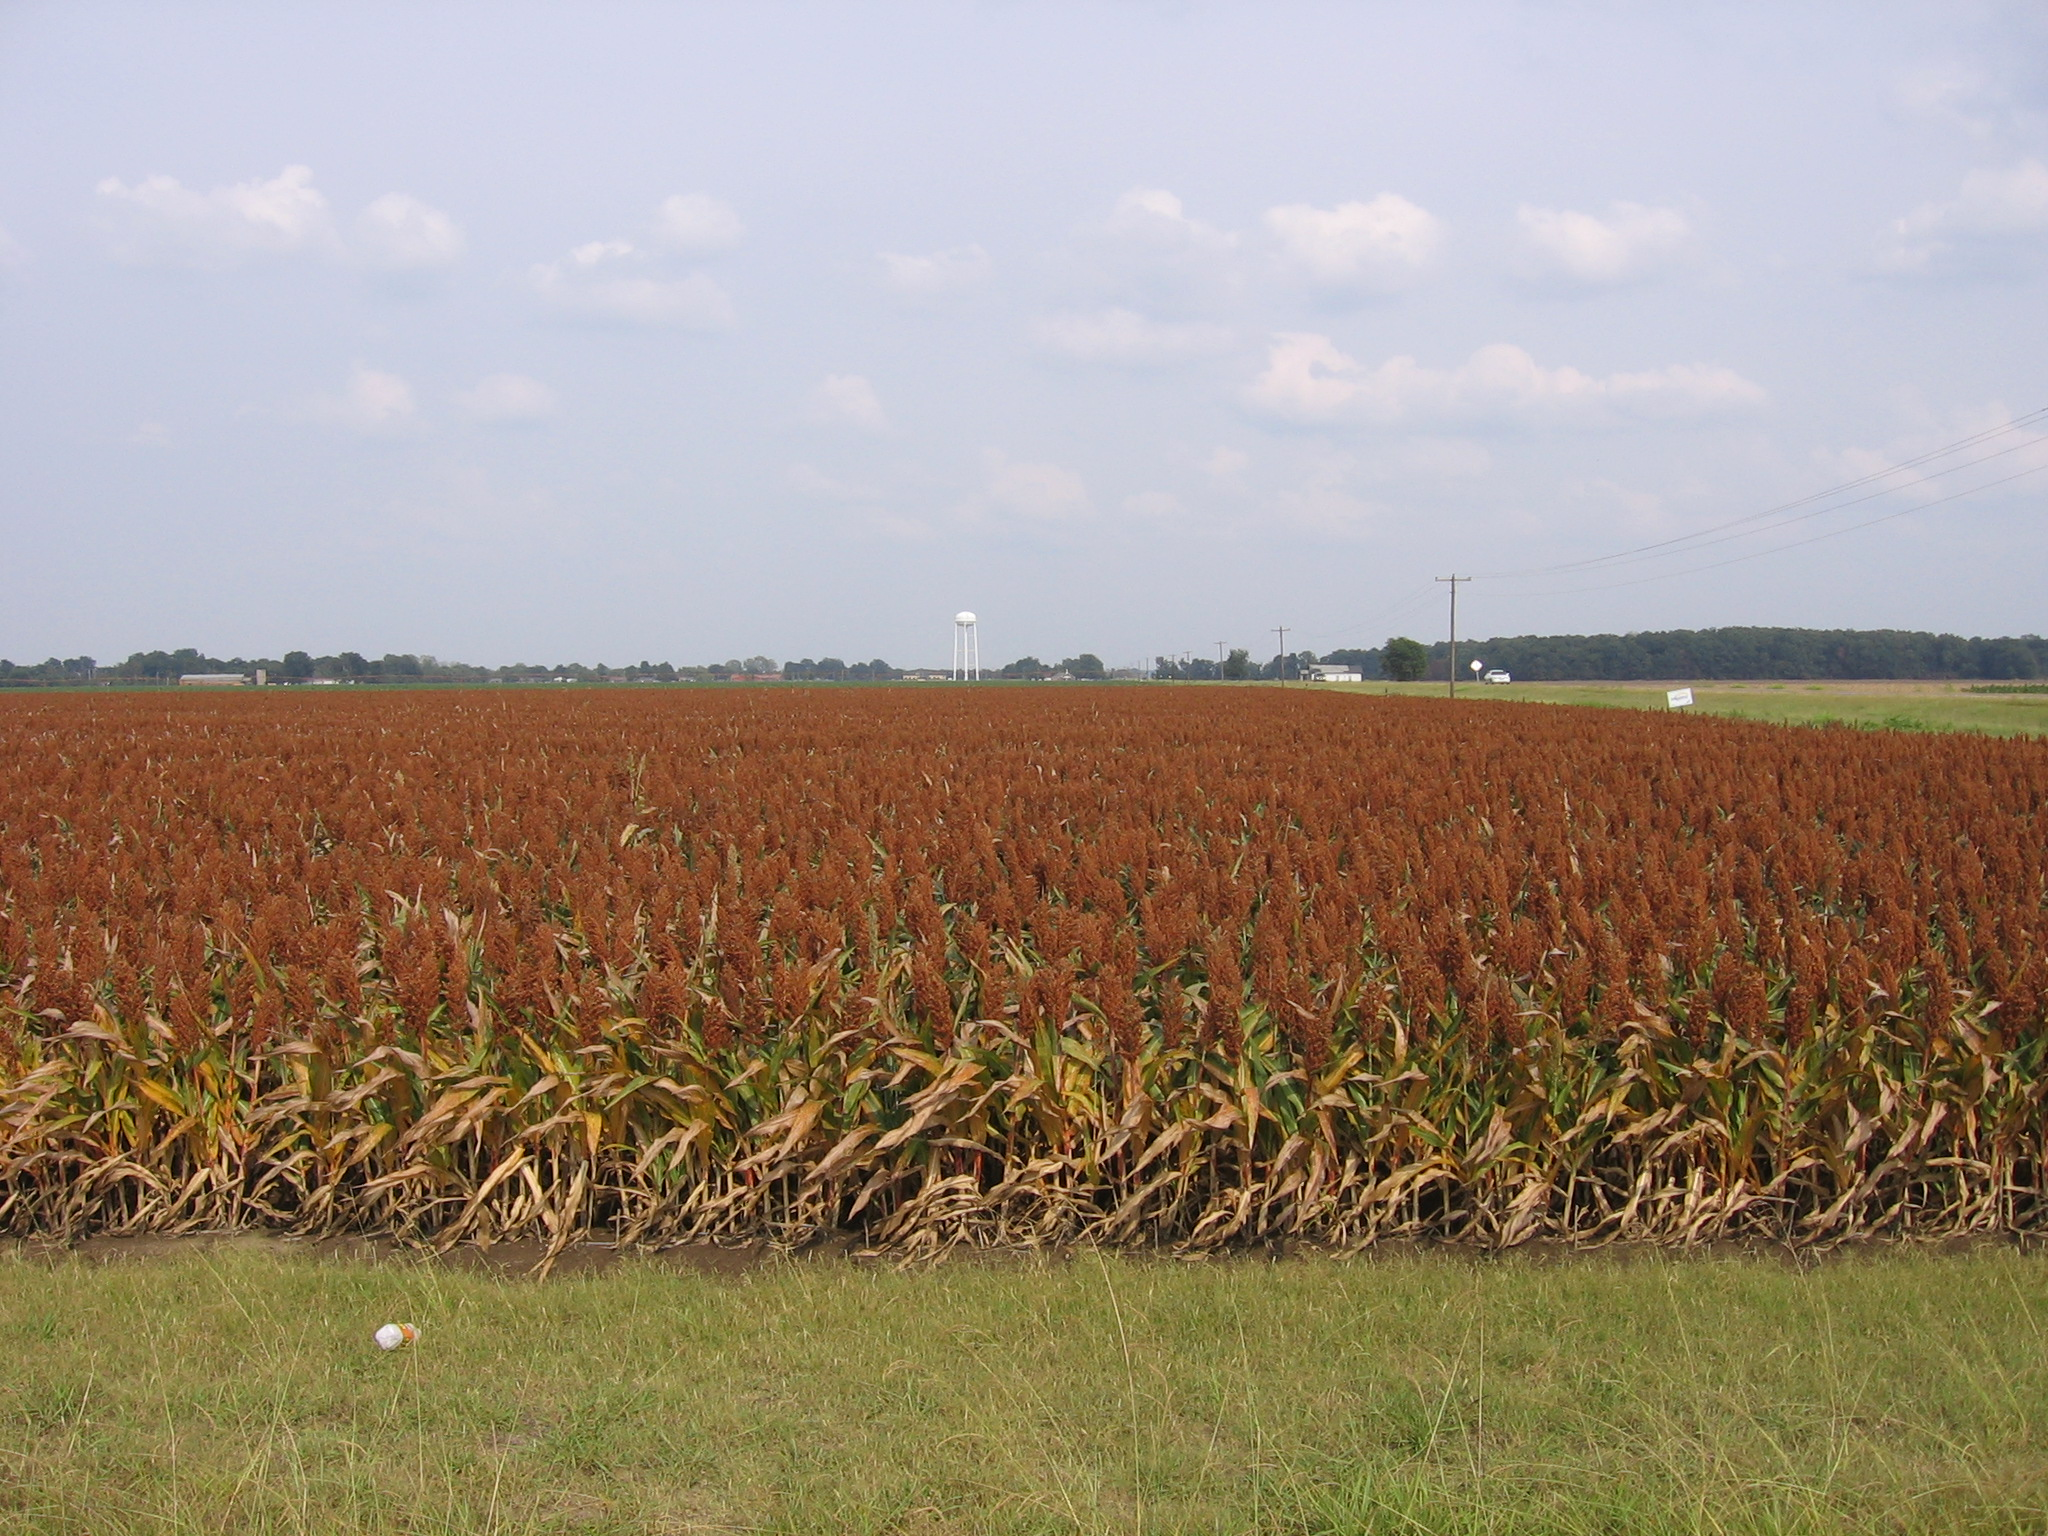 Mississippi tunica county dundee - Sorghum Mississippidelta Tunicacounty Milosorghum